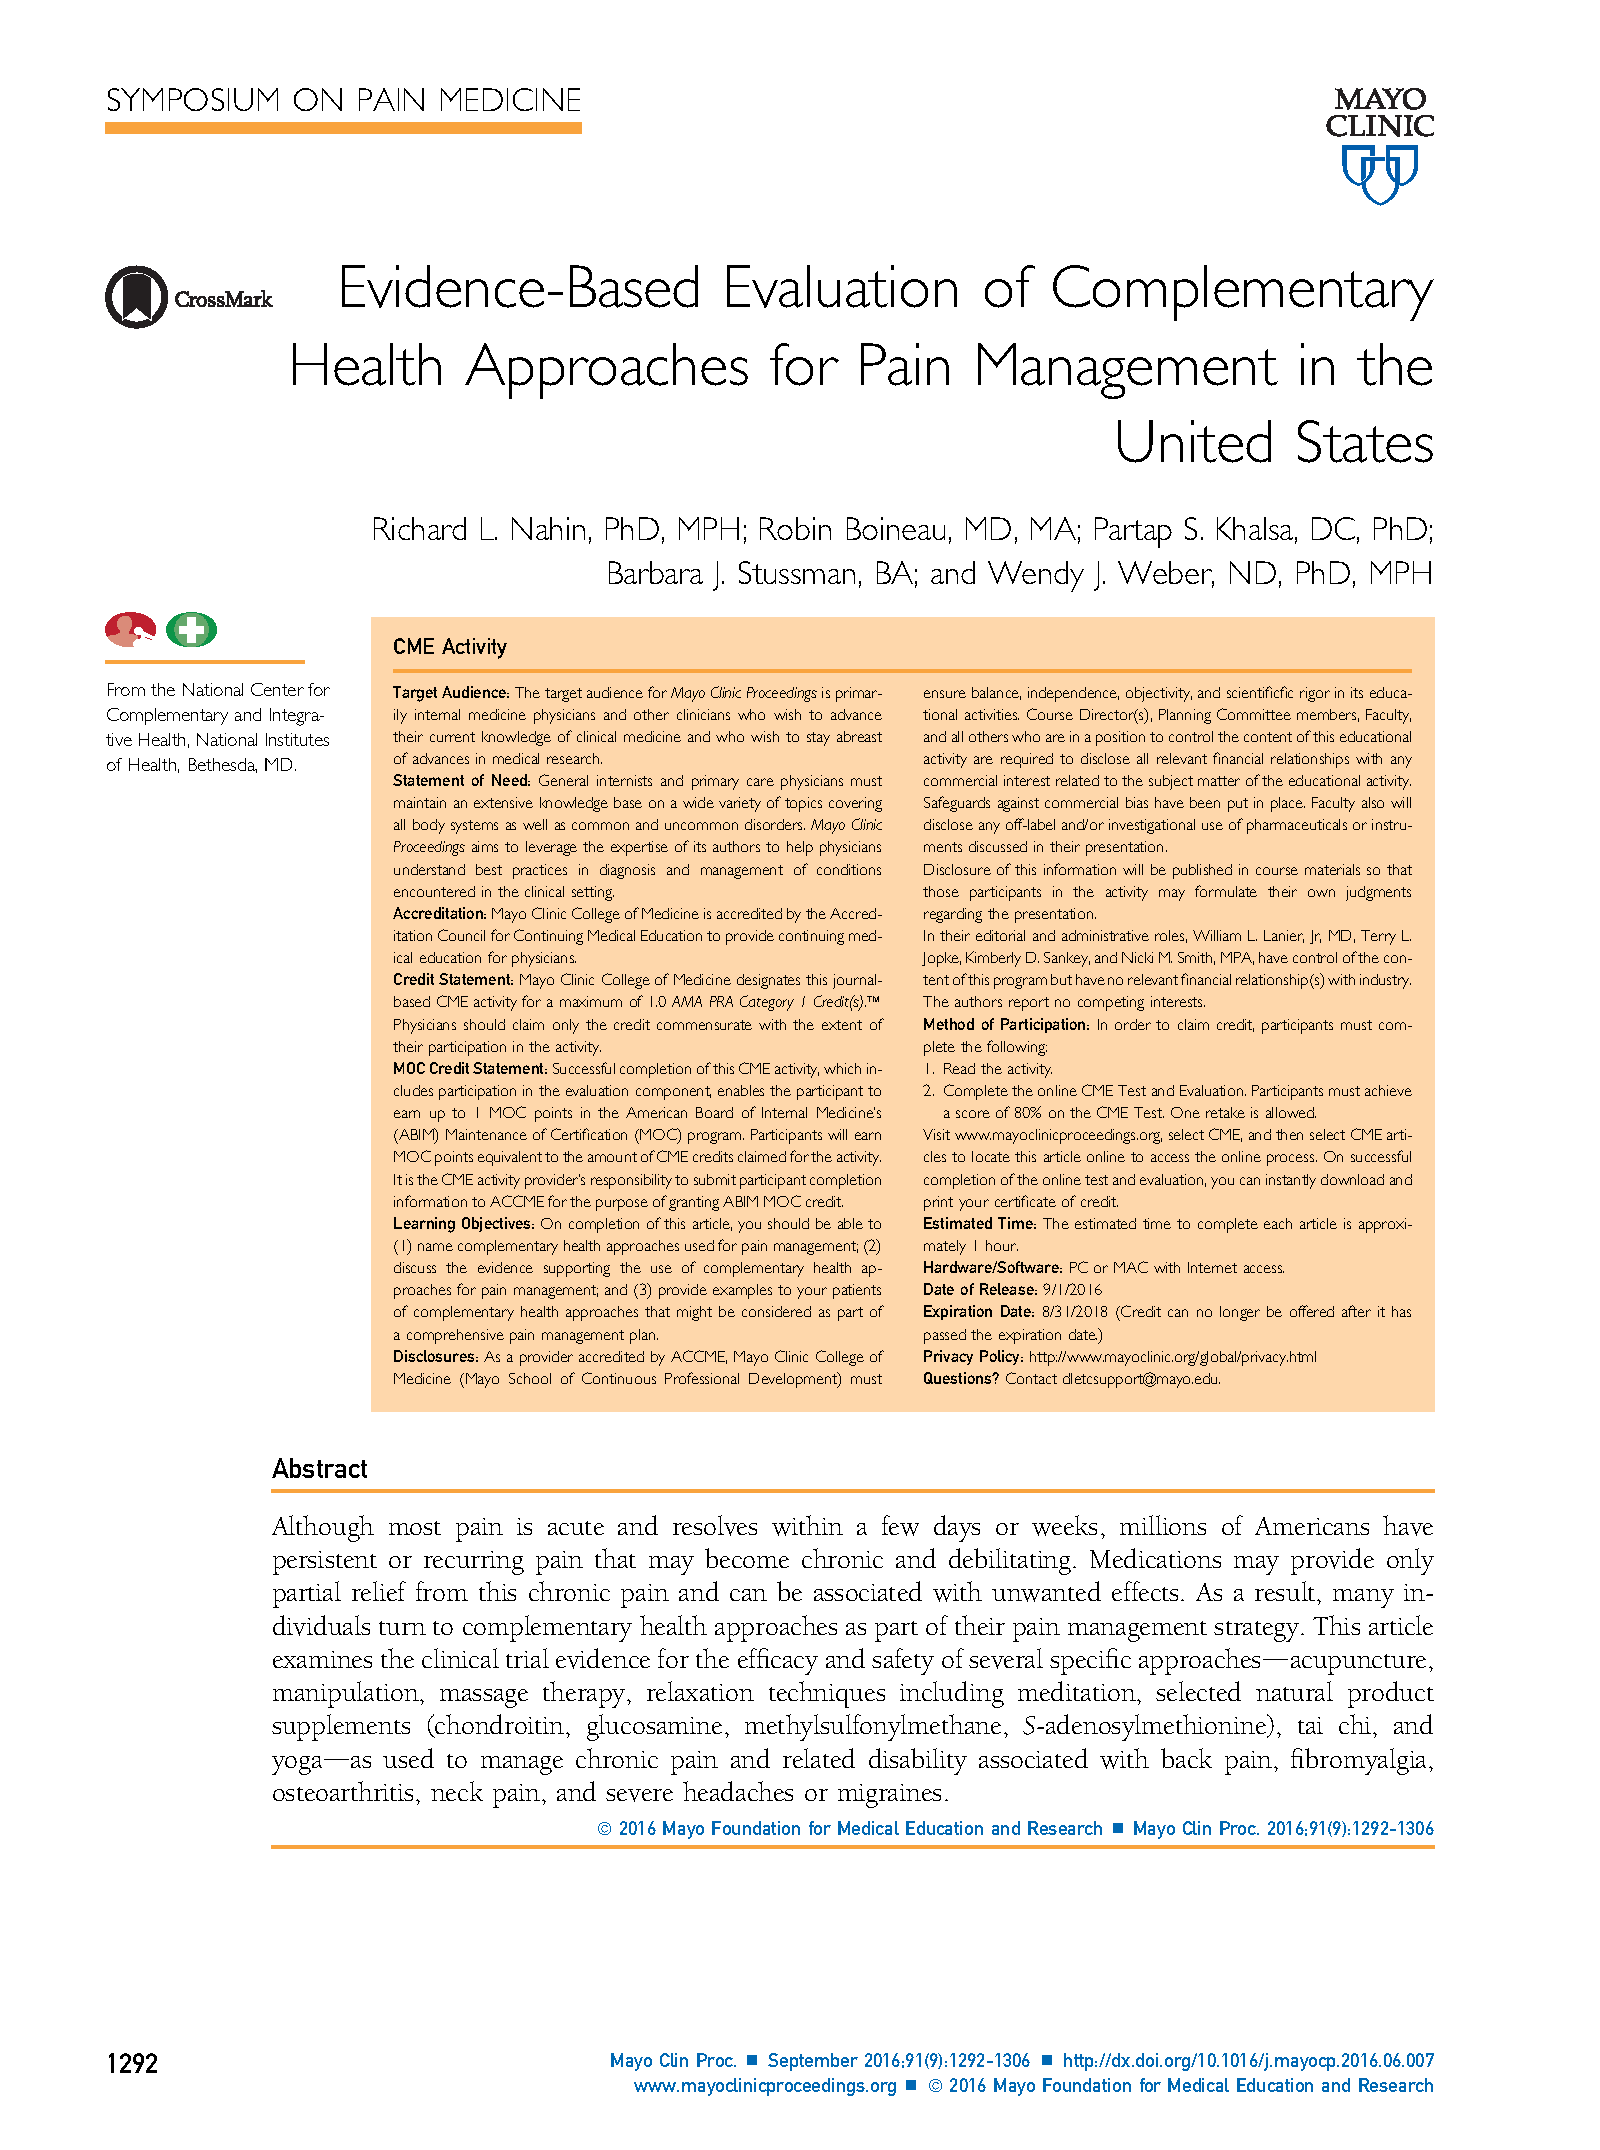 Evidence-Based Evaluation of Complementary Health Approaches for Pain Management in the United States (2016)